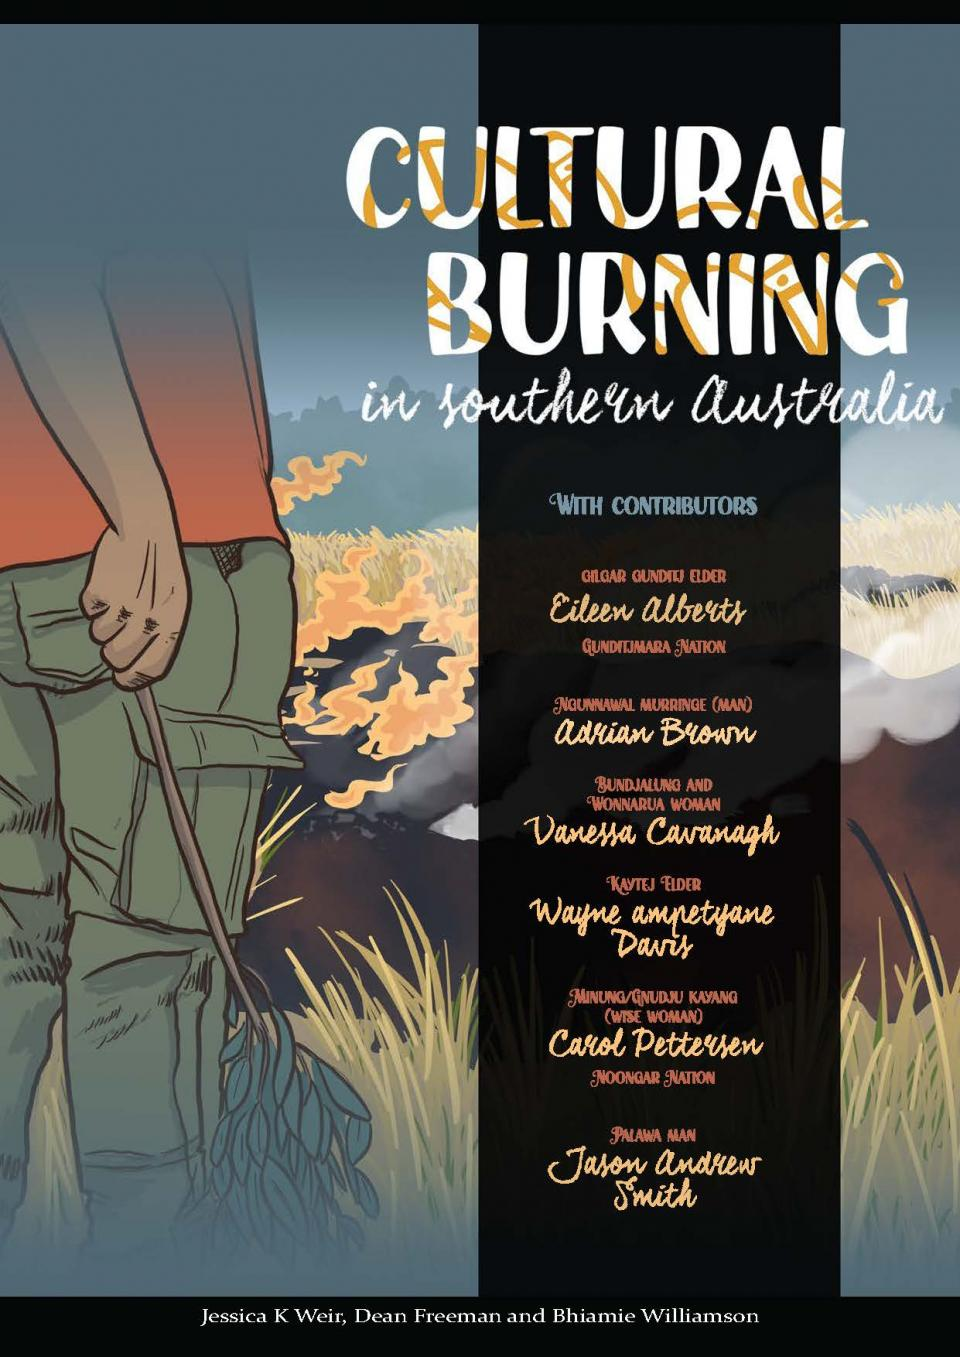 Cultural burning in southern Australia